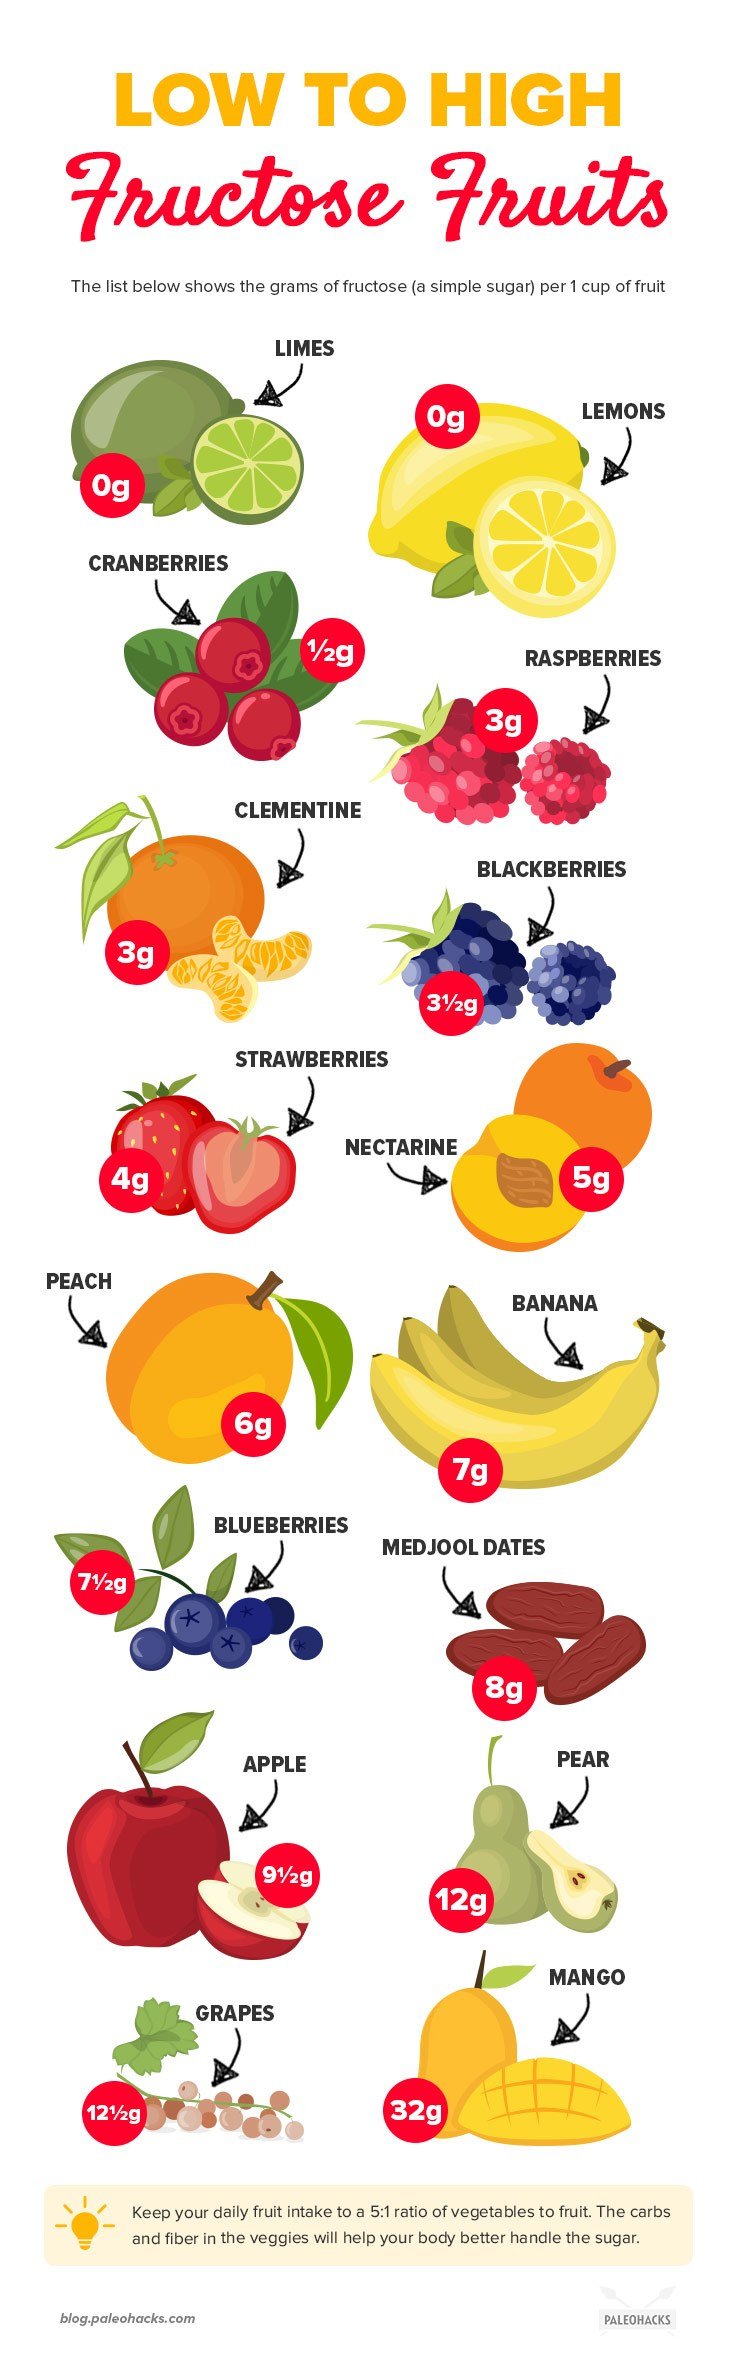 examples of high fructose foods